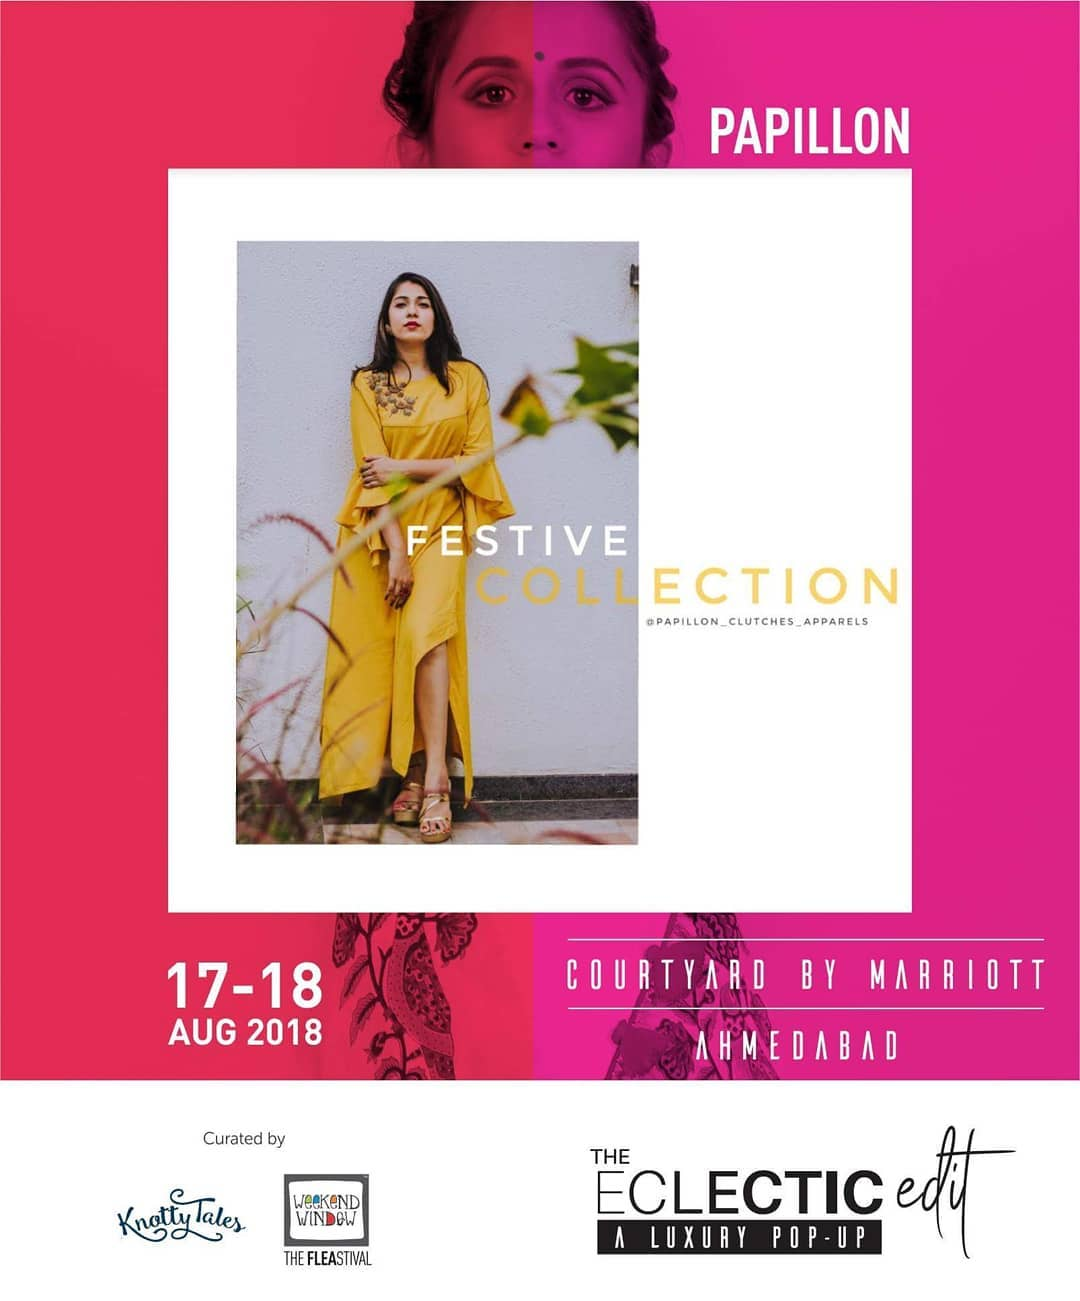 An electric mix of stylish n classic Sling Bags & Clutches just a click away by @papillon_clutches_apparels !  65+ designers showcasing at The Eclectic Edit - Season 3 curated by @knottytales_kt & @weekendwindow .  #festivecollection #papillonapparels #ethnicwear #indianwear #indianfashion #indowestern #yellow #brightcolours #handembroidered #madeinindia #indowesternlook #trendyclothing #indianclothing #mehendilook #yellowandgolden #stylish #weekendwindow #knottytales #theeclecticedit #aluxurypopup